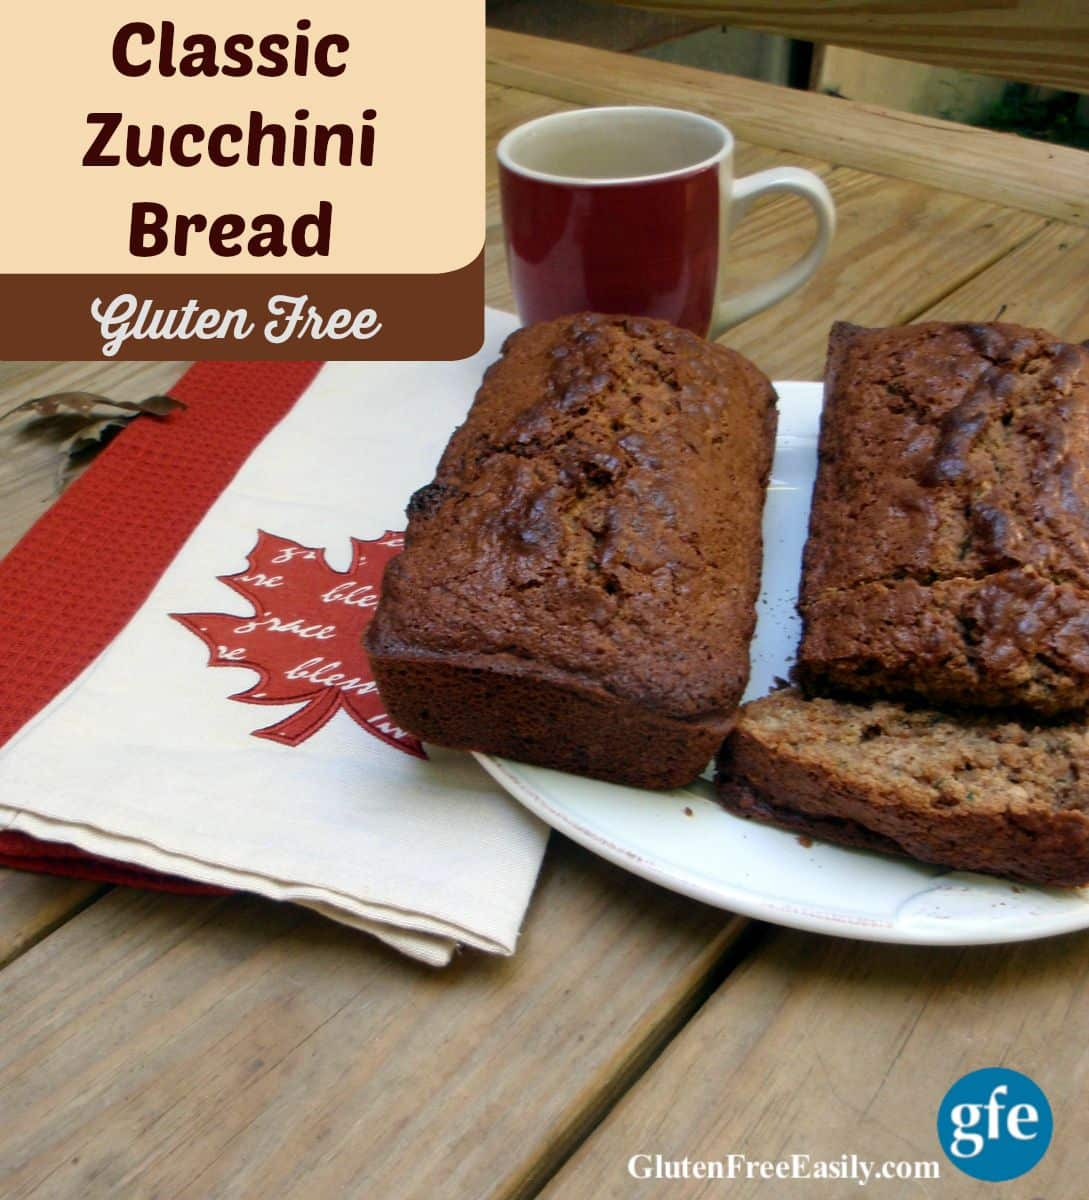 Gluten-Free Zucchini Bread. This is a classic quick bread and a great way to use the summer bounty of zucchini. I don't have a zucchini supply, so I buy mine just to make this bread! (photo)